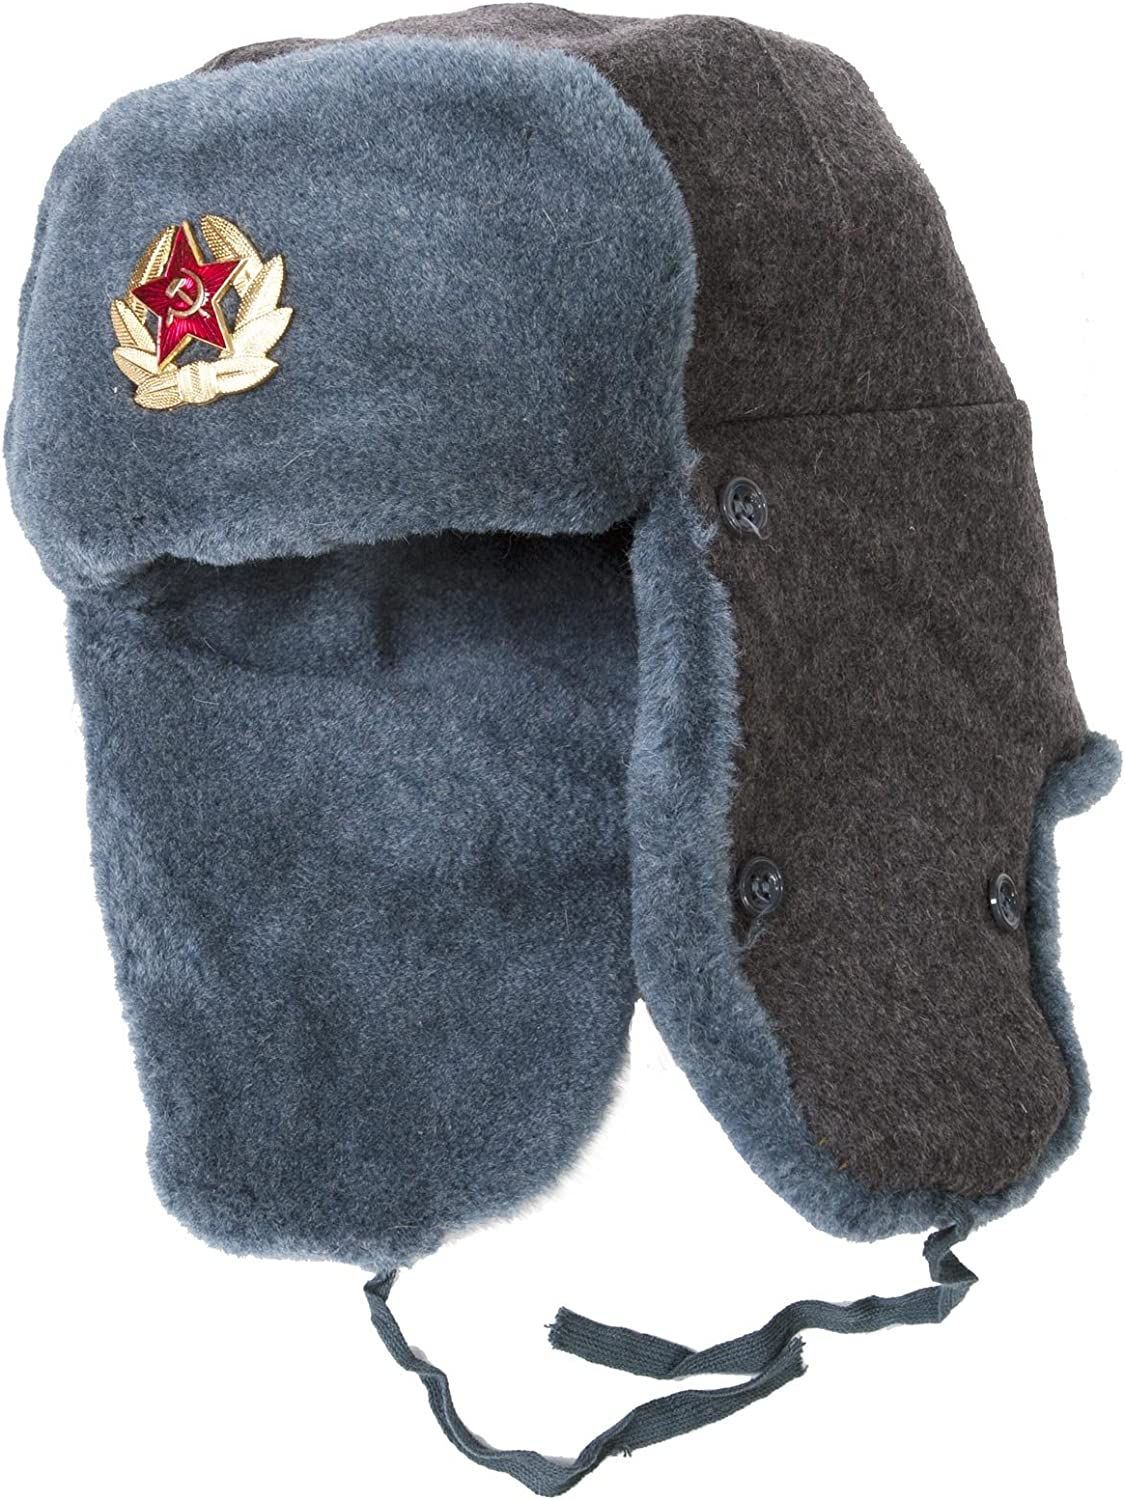 TEPEM Authentic Russian Army Ushanka Winter Hat, with Soviet Army Officer Insignia